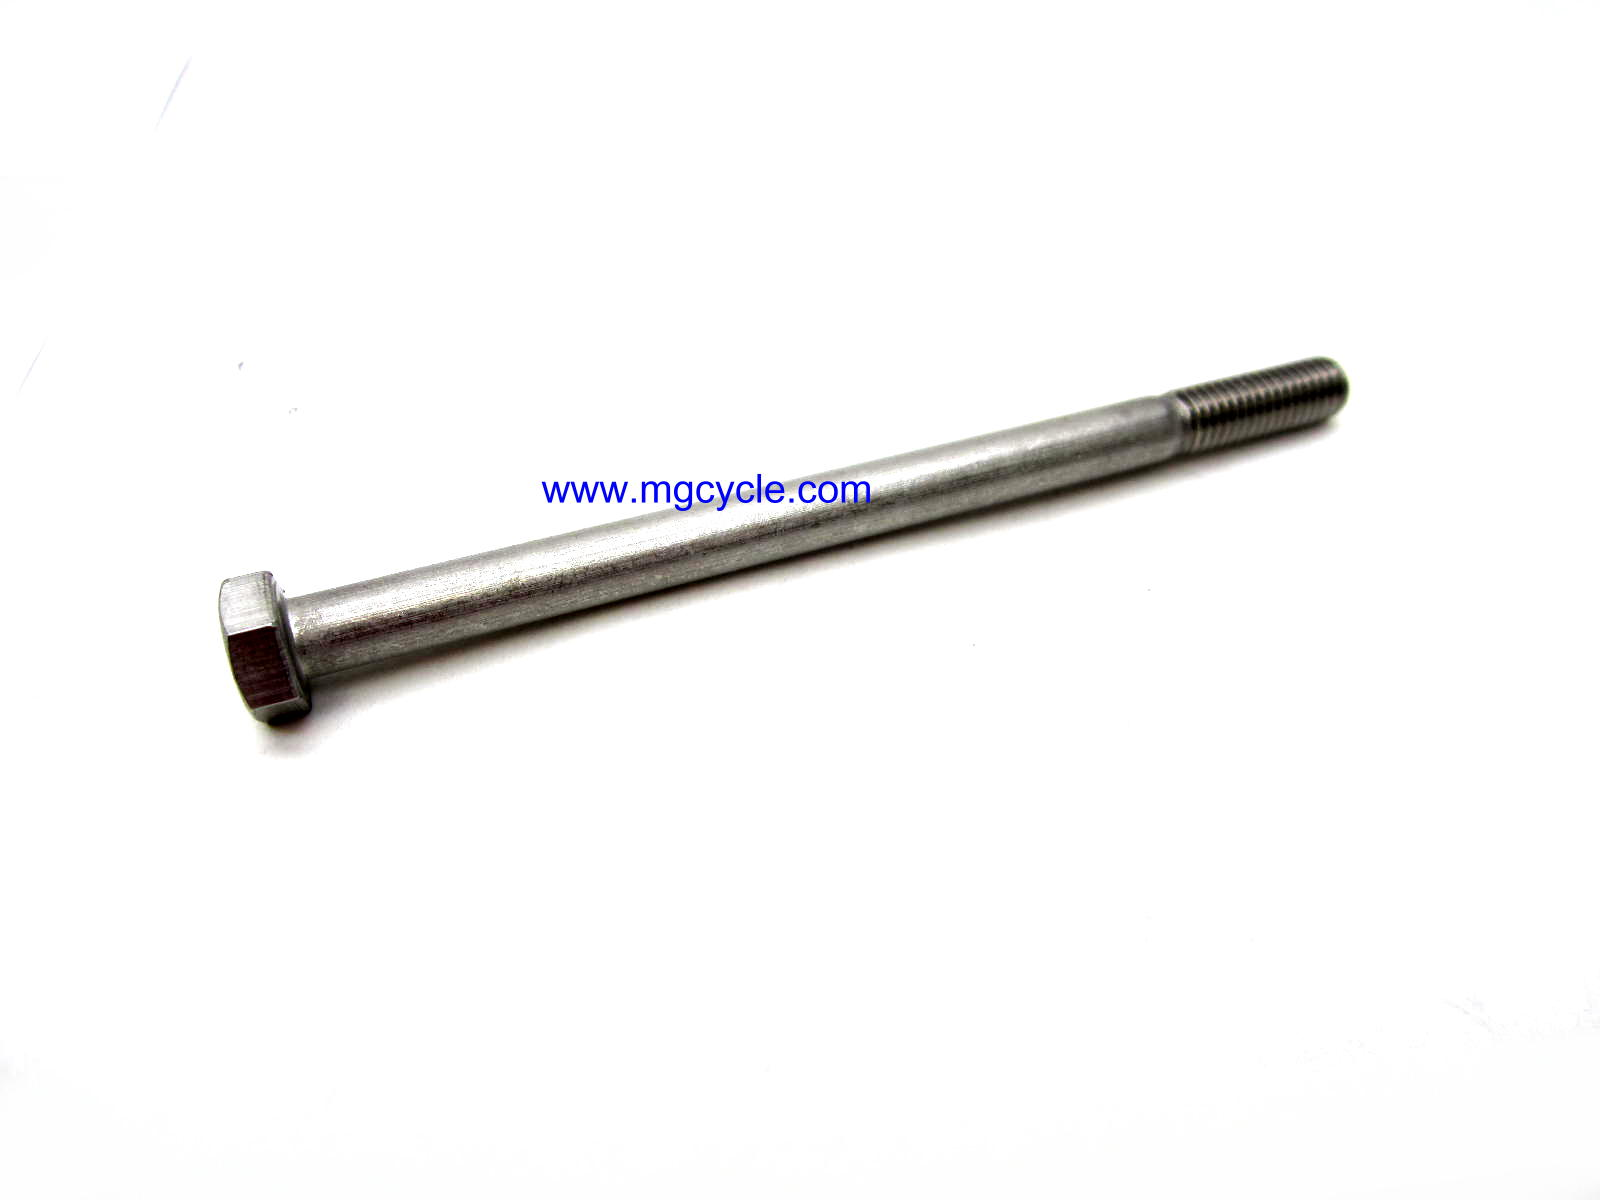 120mm long M8 bolt, loop fuel tank, EBC disks, stainless